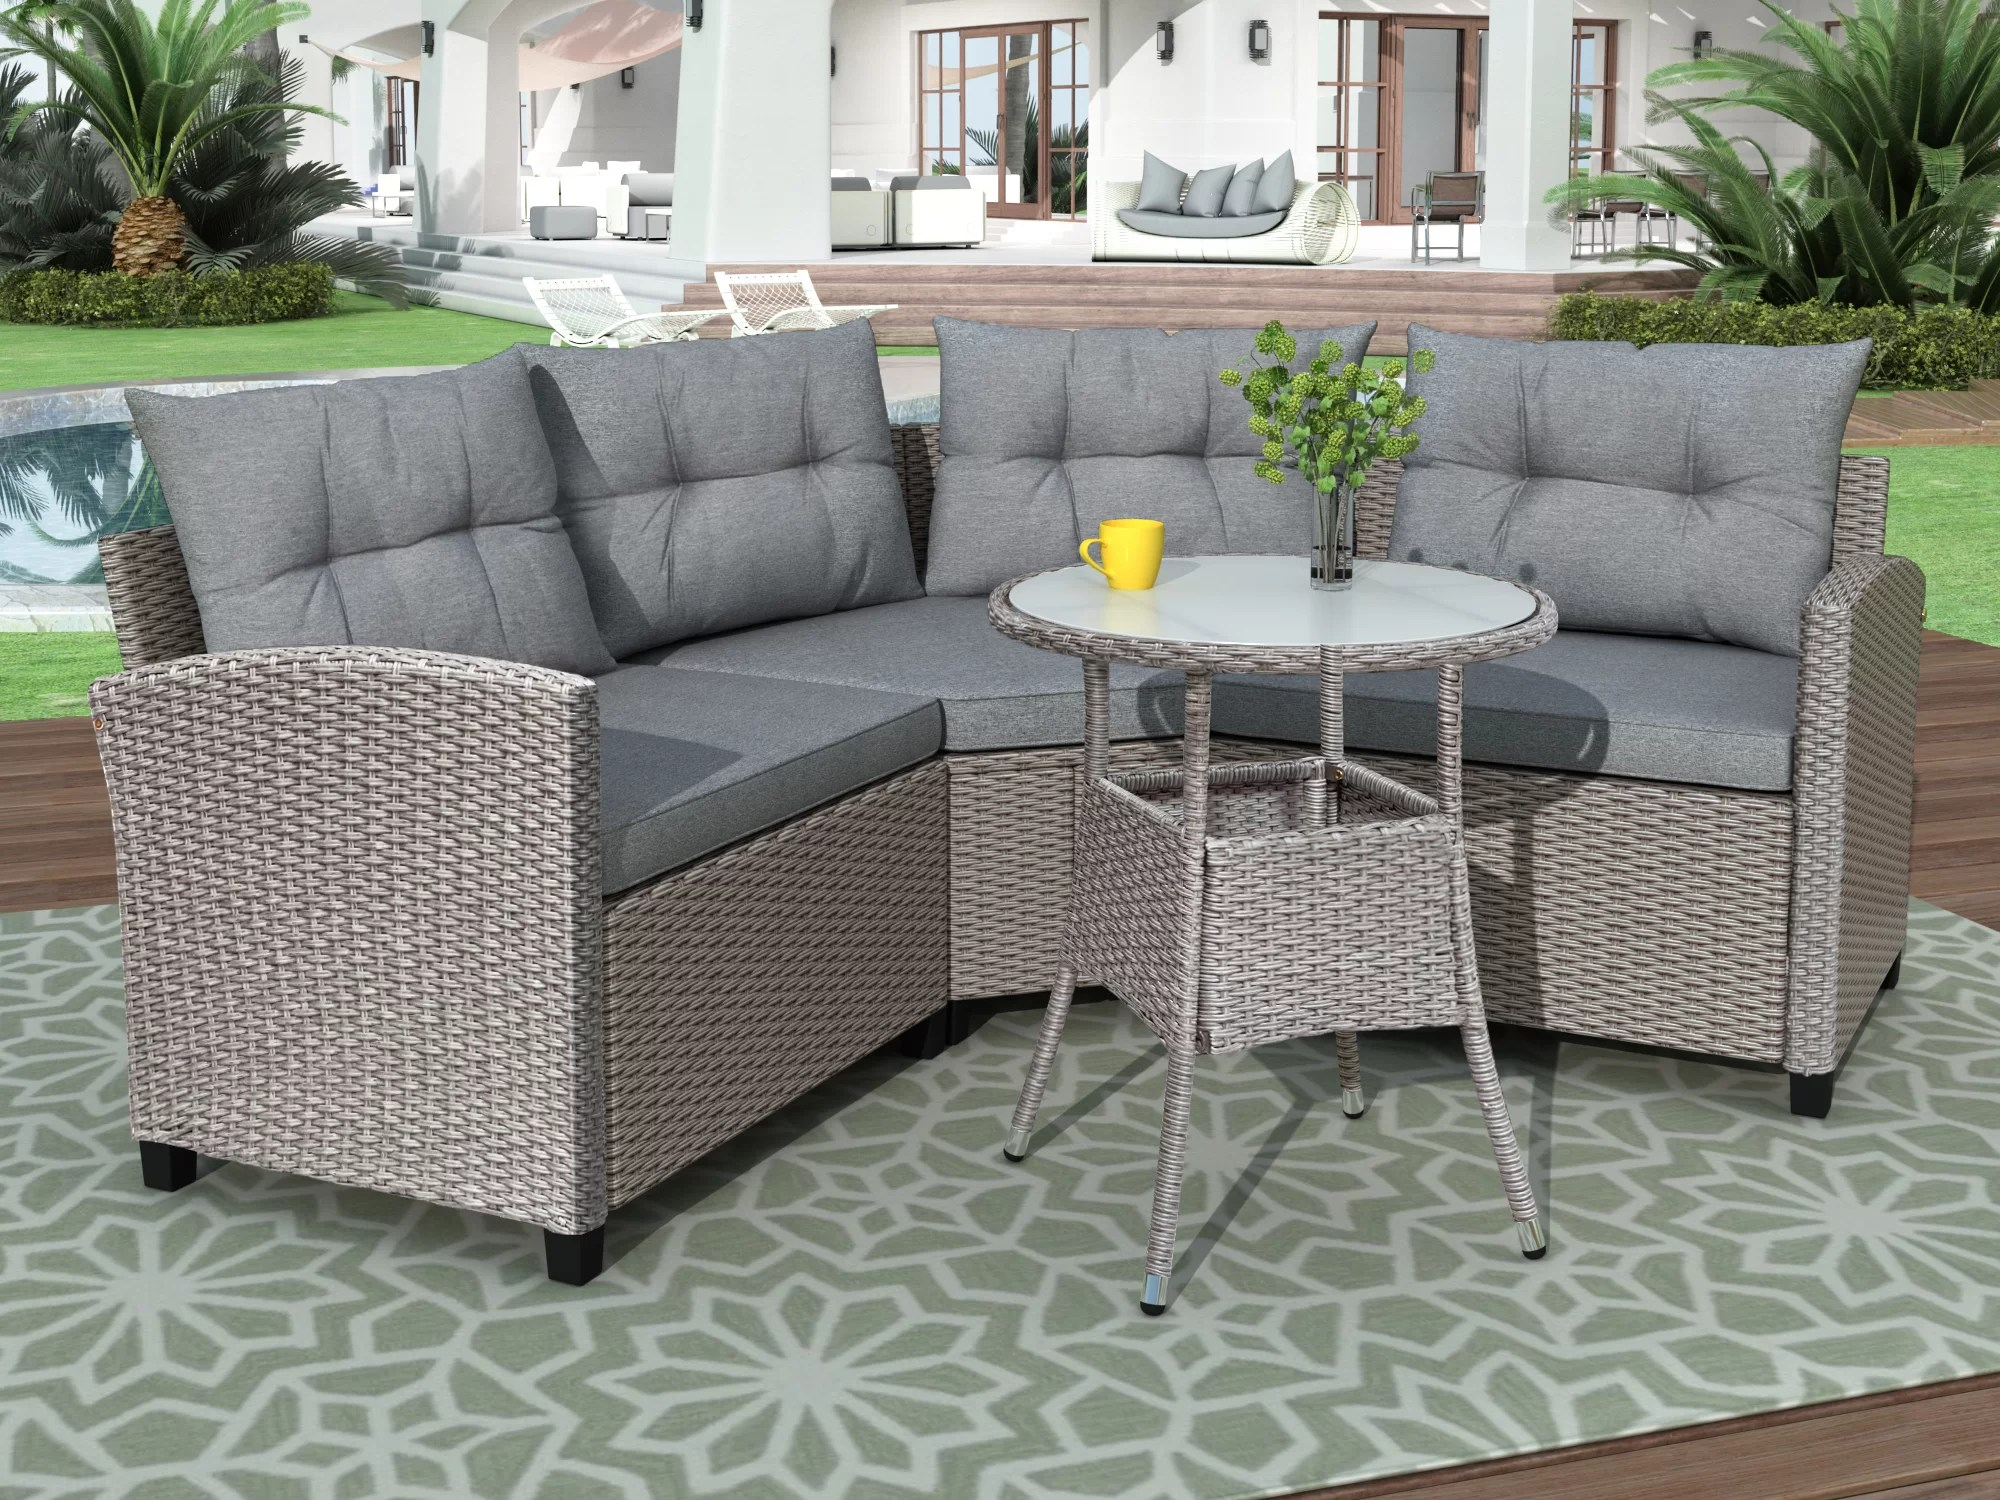 4 piece resin wicker patio furniture set with round table gray cushions